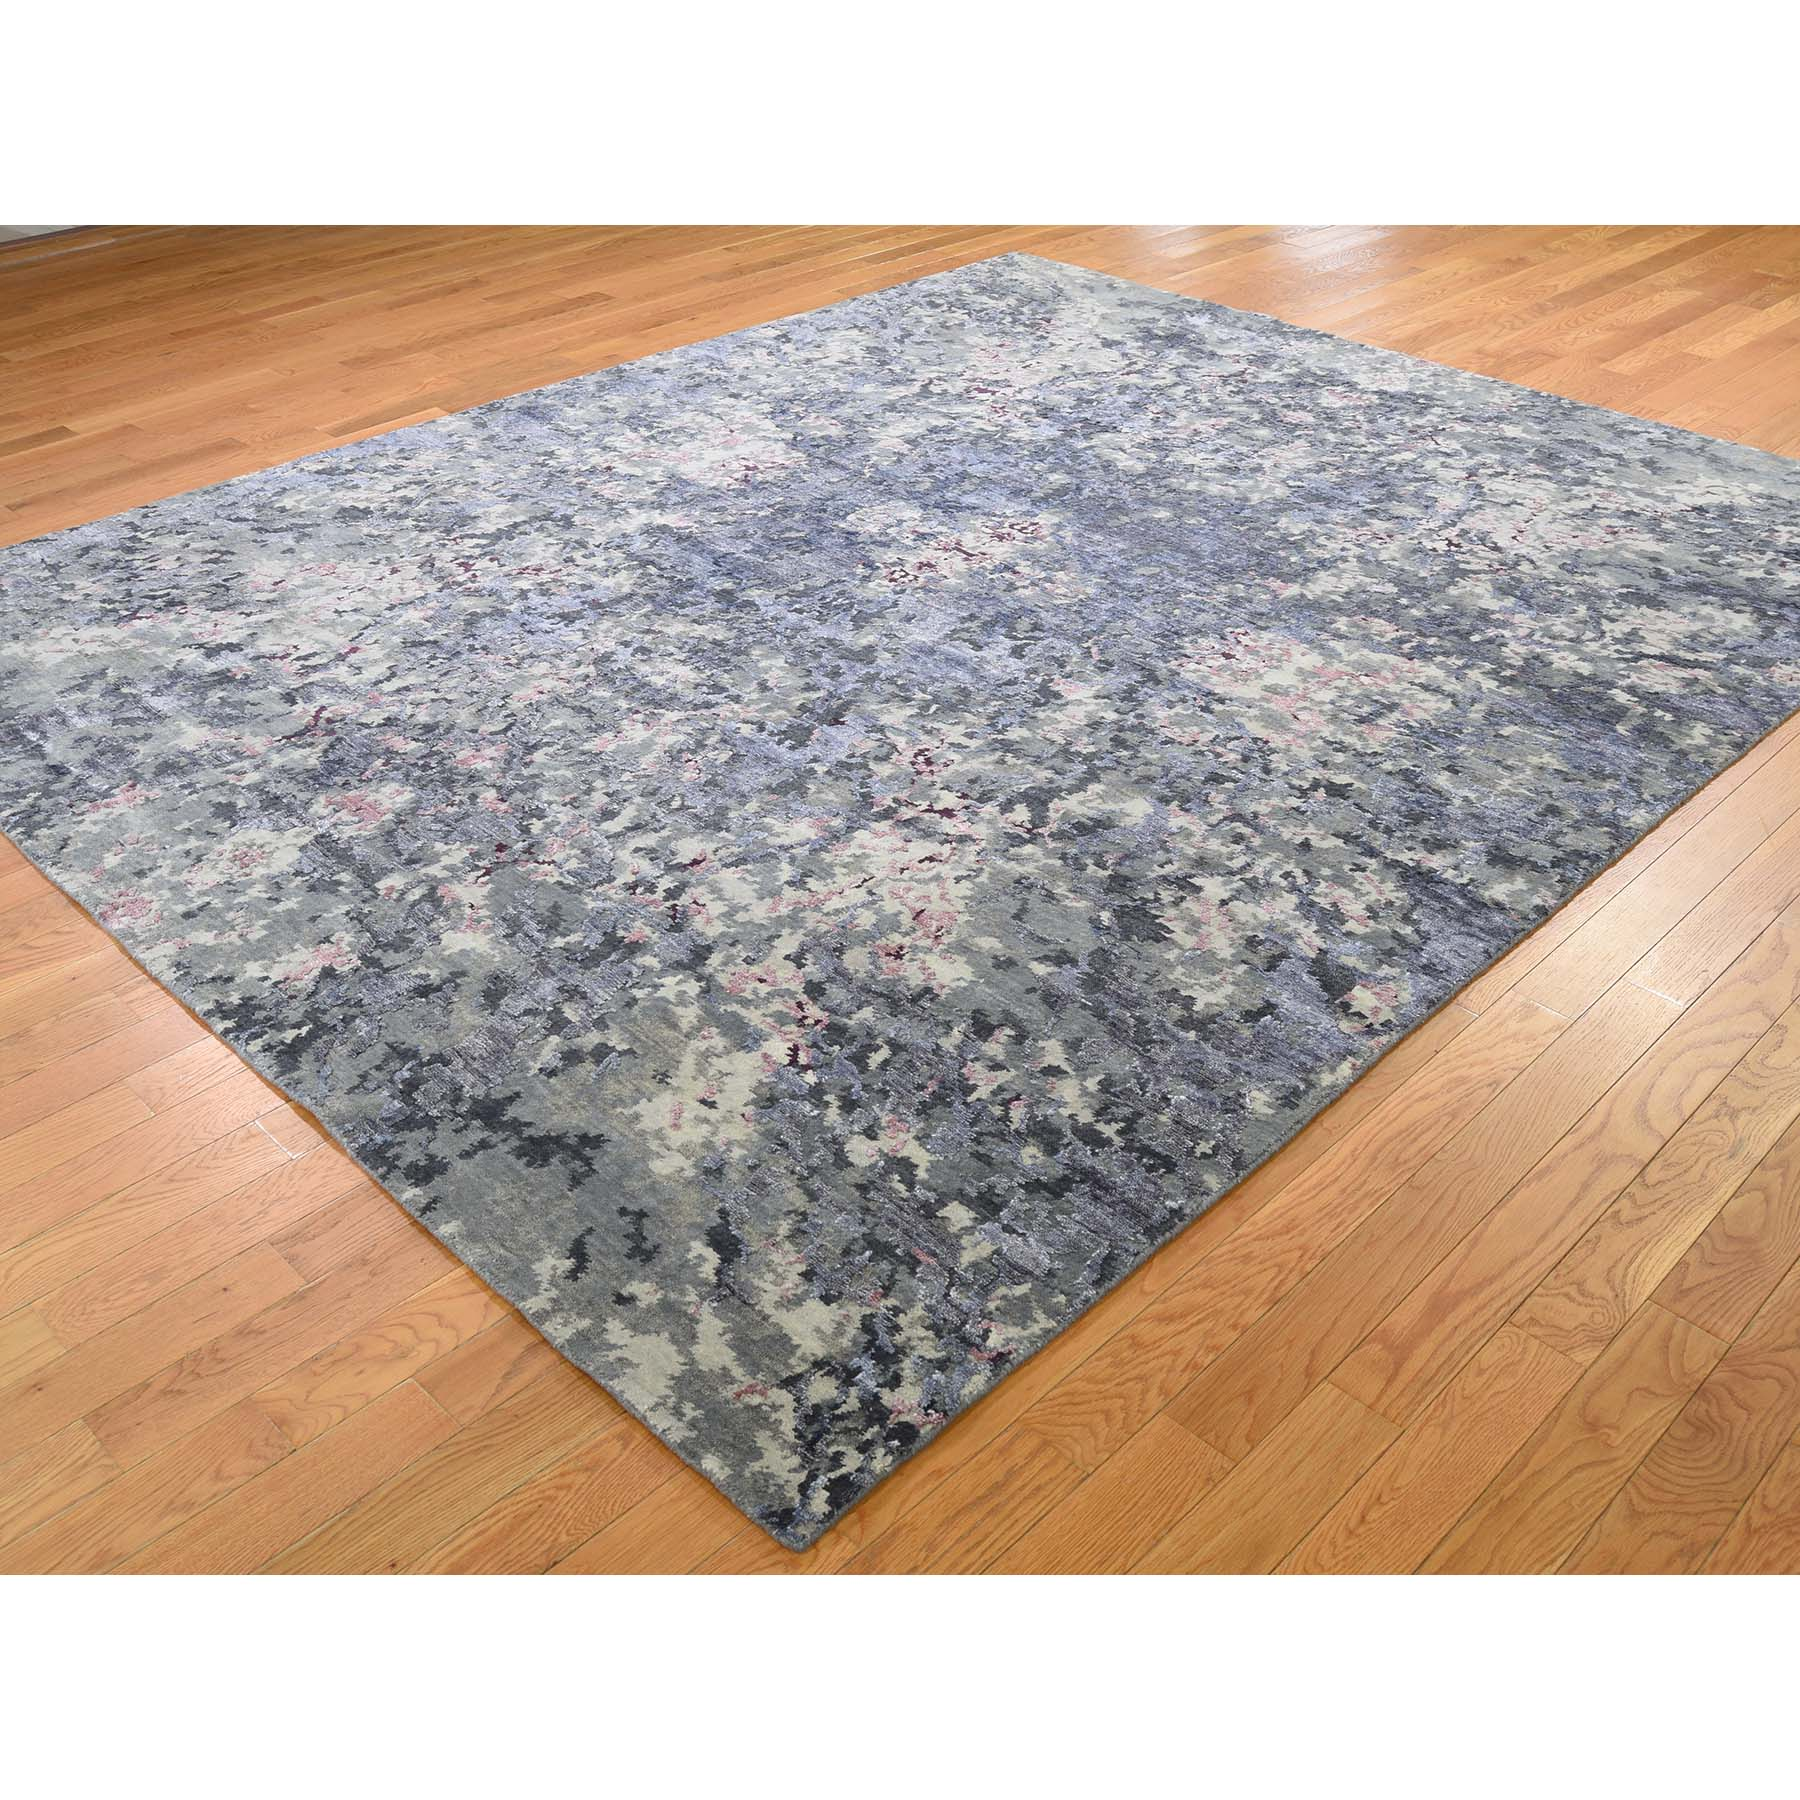 8-x9-9  Abstract Design Wool And Silk Hand-Knotted Oriental Rug